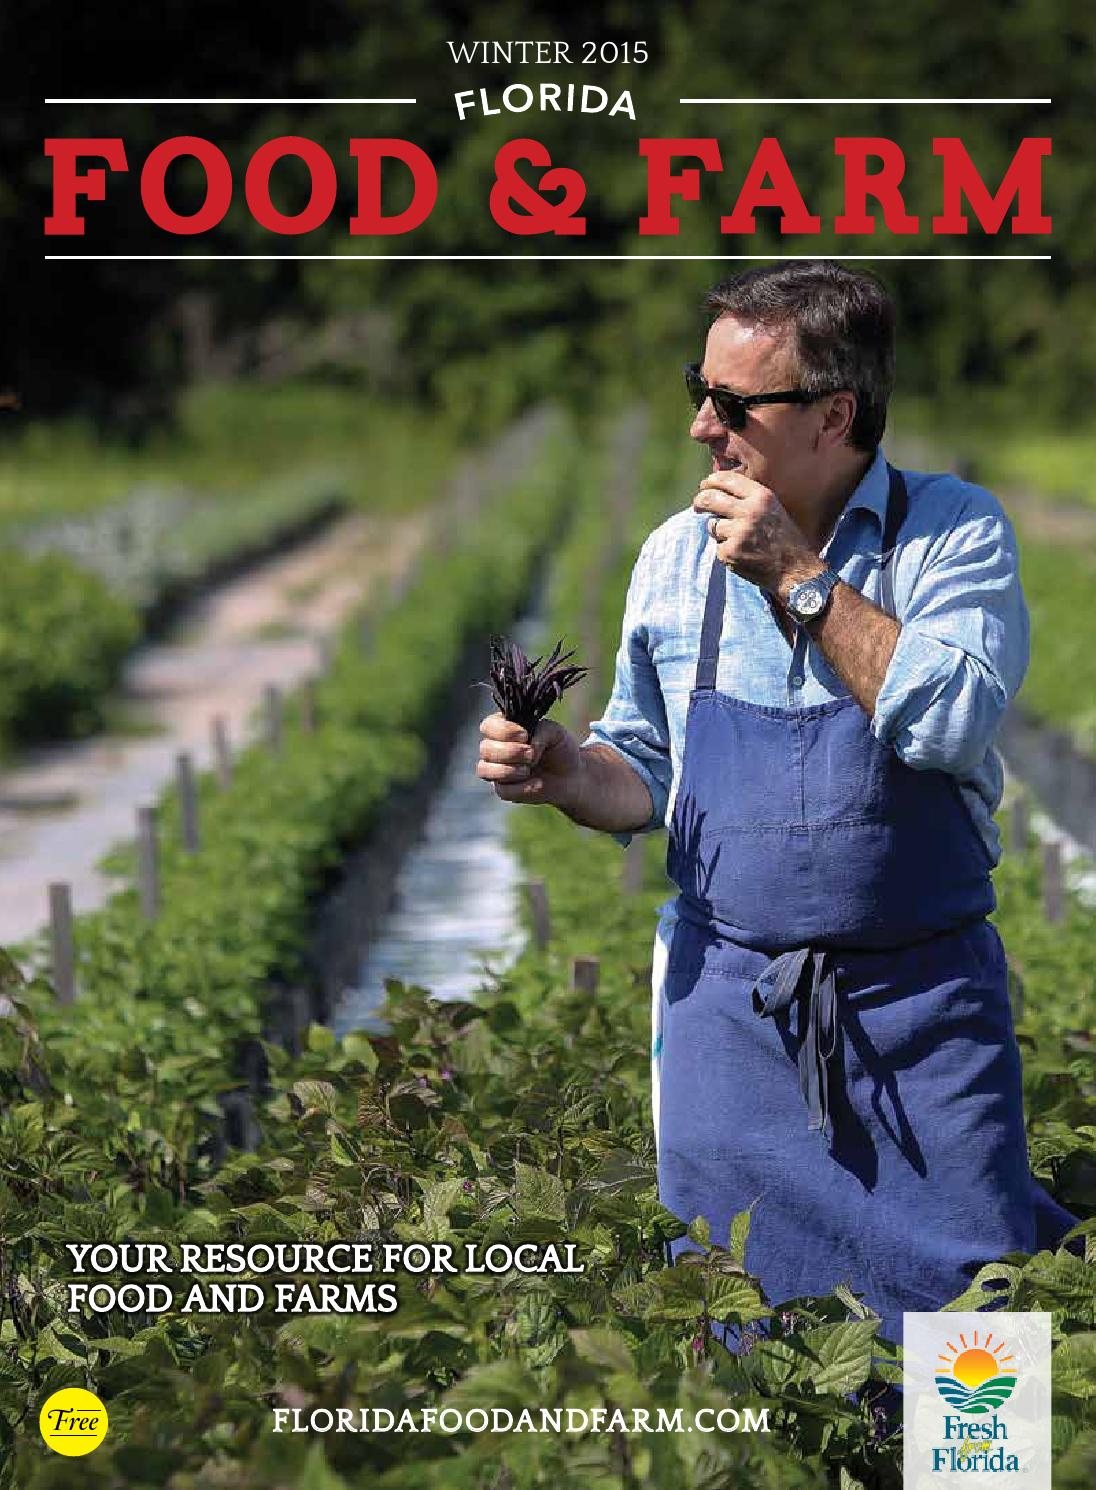 florida food u0026 farm winter 2015 by florida food u0026 farm issuu